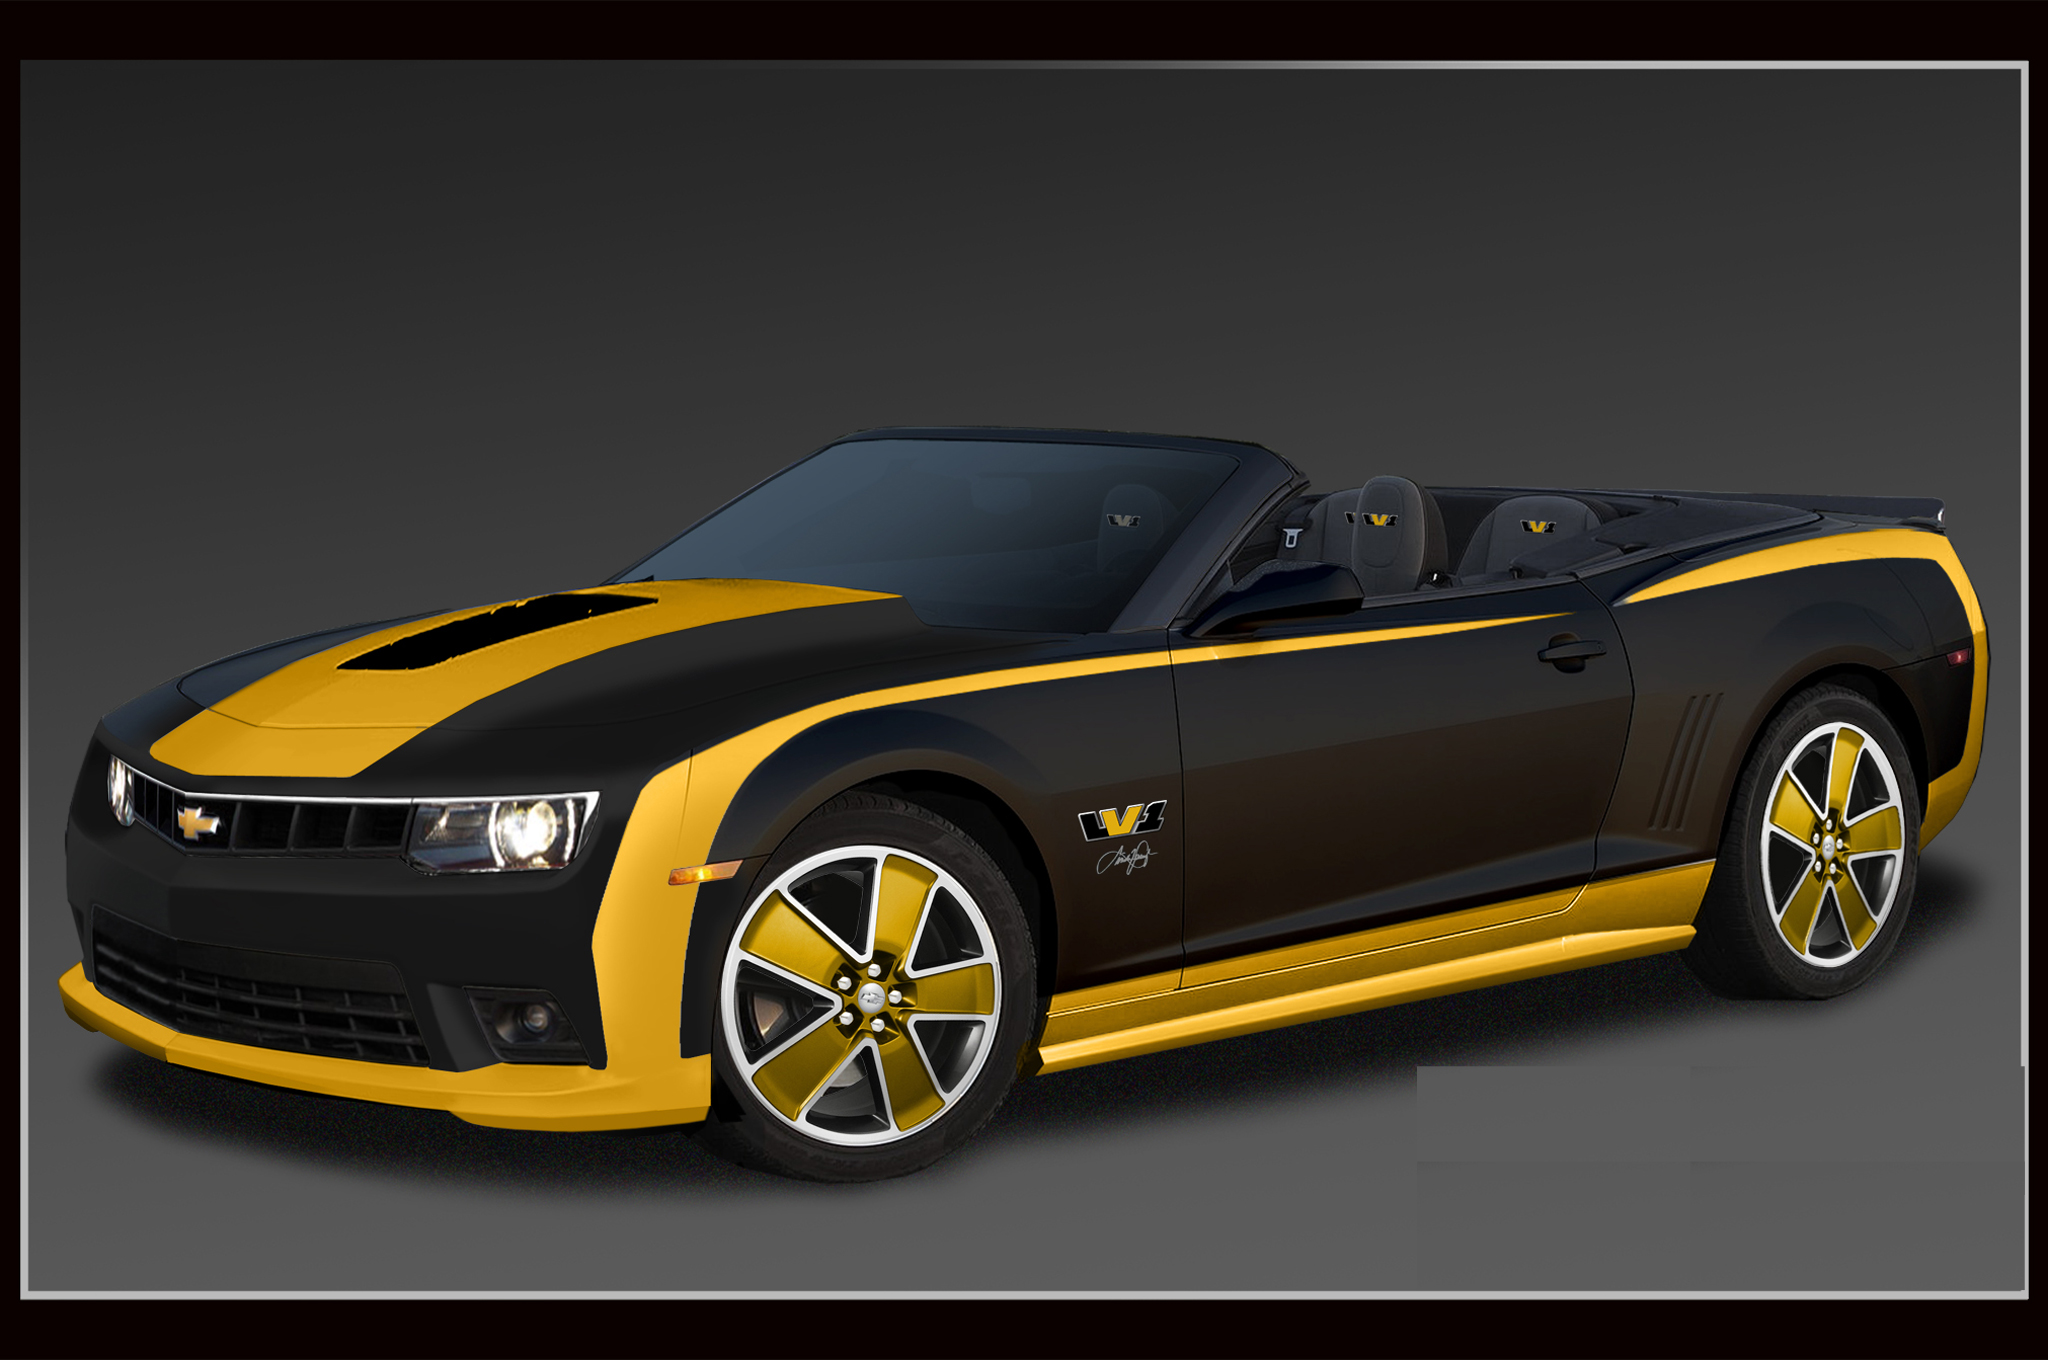 2014 chevrolet camaro black gold. Cars Review. Best American Auto & Cars Review